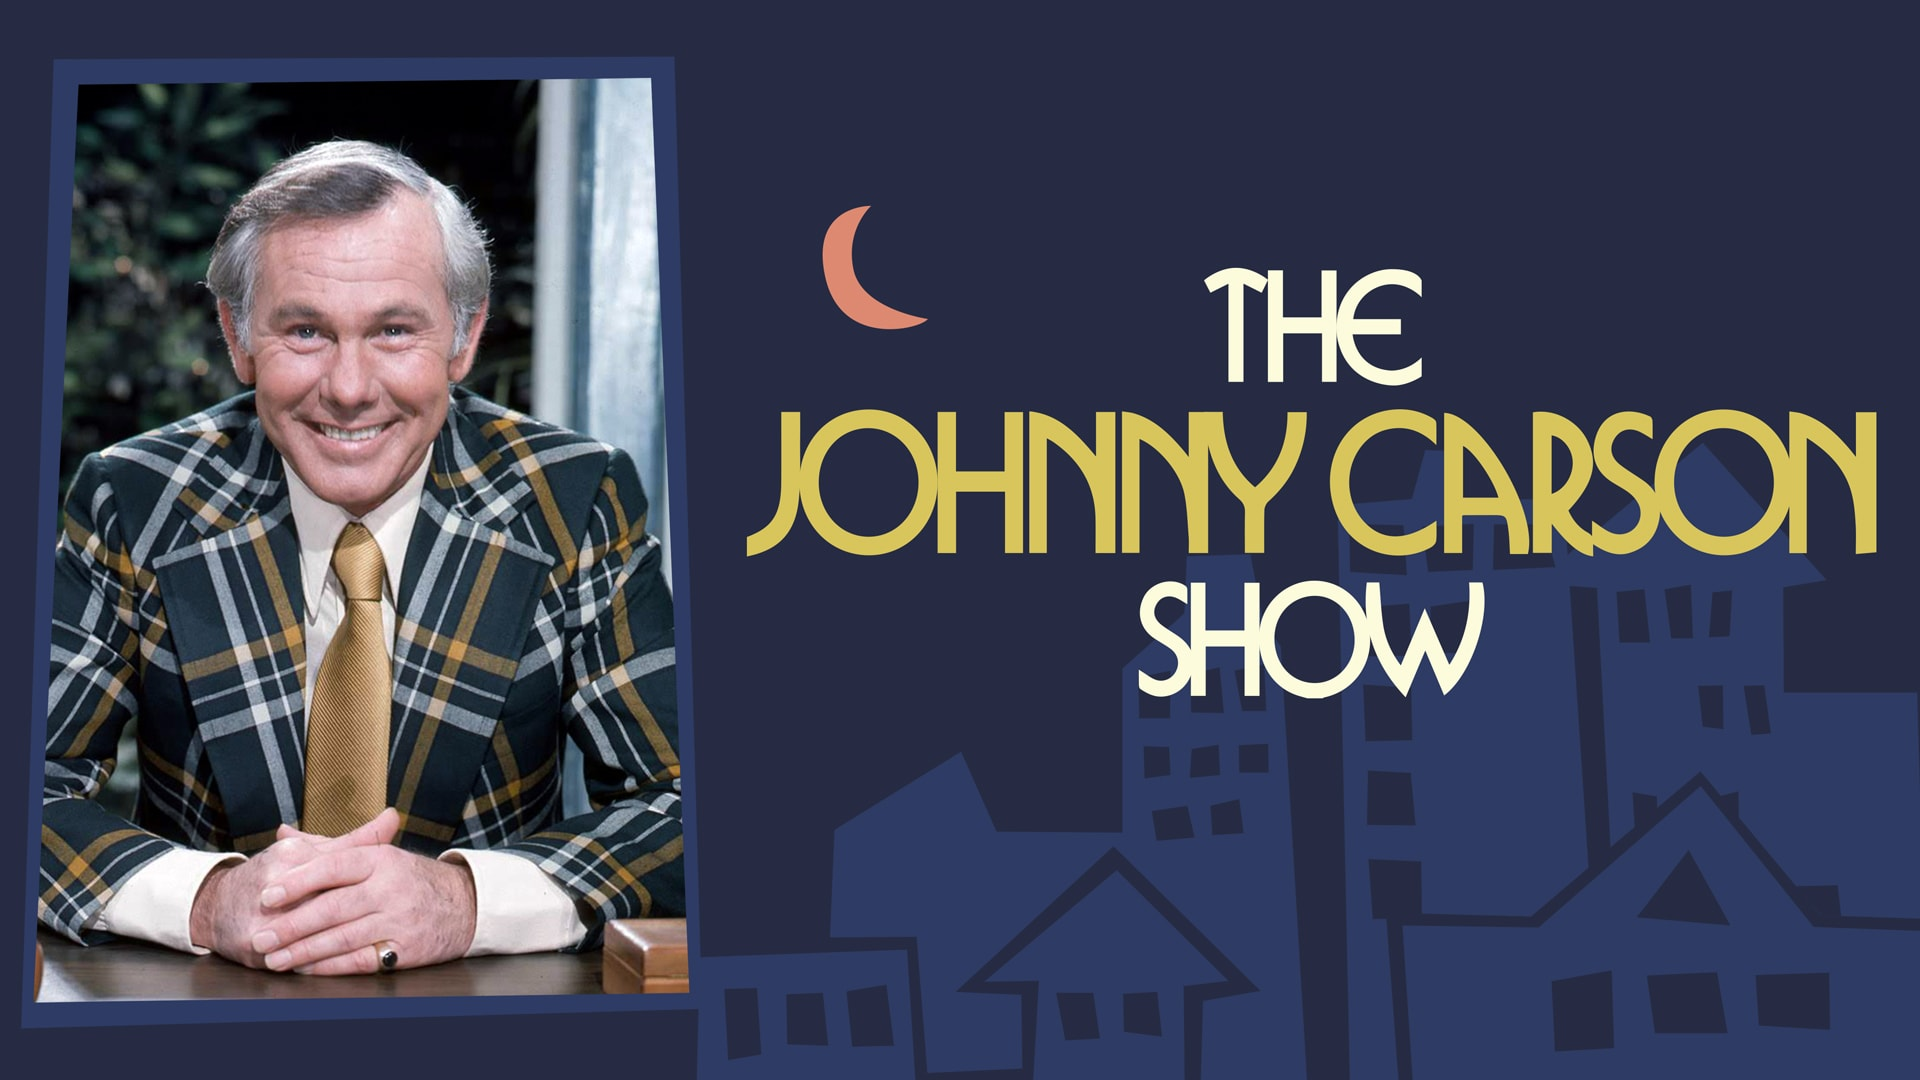 The Johnny Carson Show: Comic Legends Of The '70s - George Carlin (2/15/77)